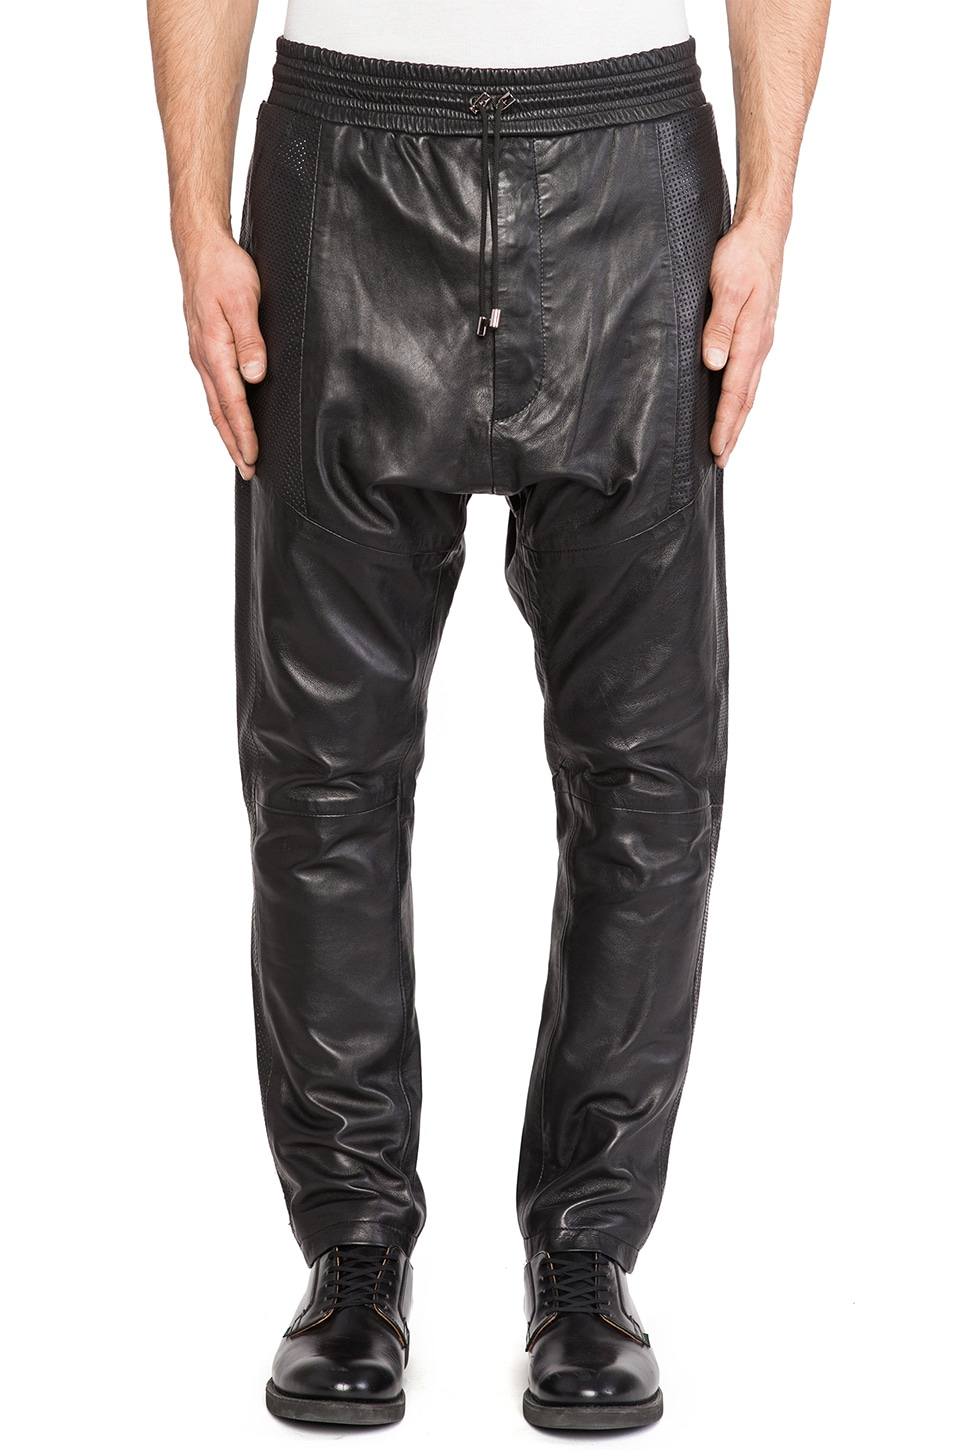 Sons of Heroes Ziggy Drop Crotch Leather Sweatpant in Black